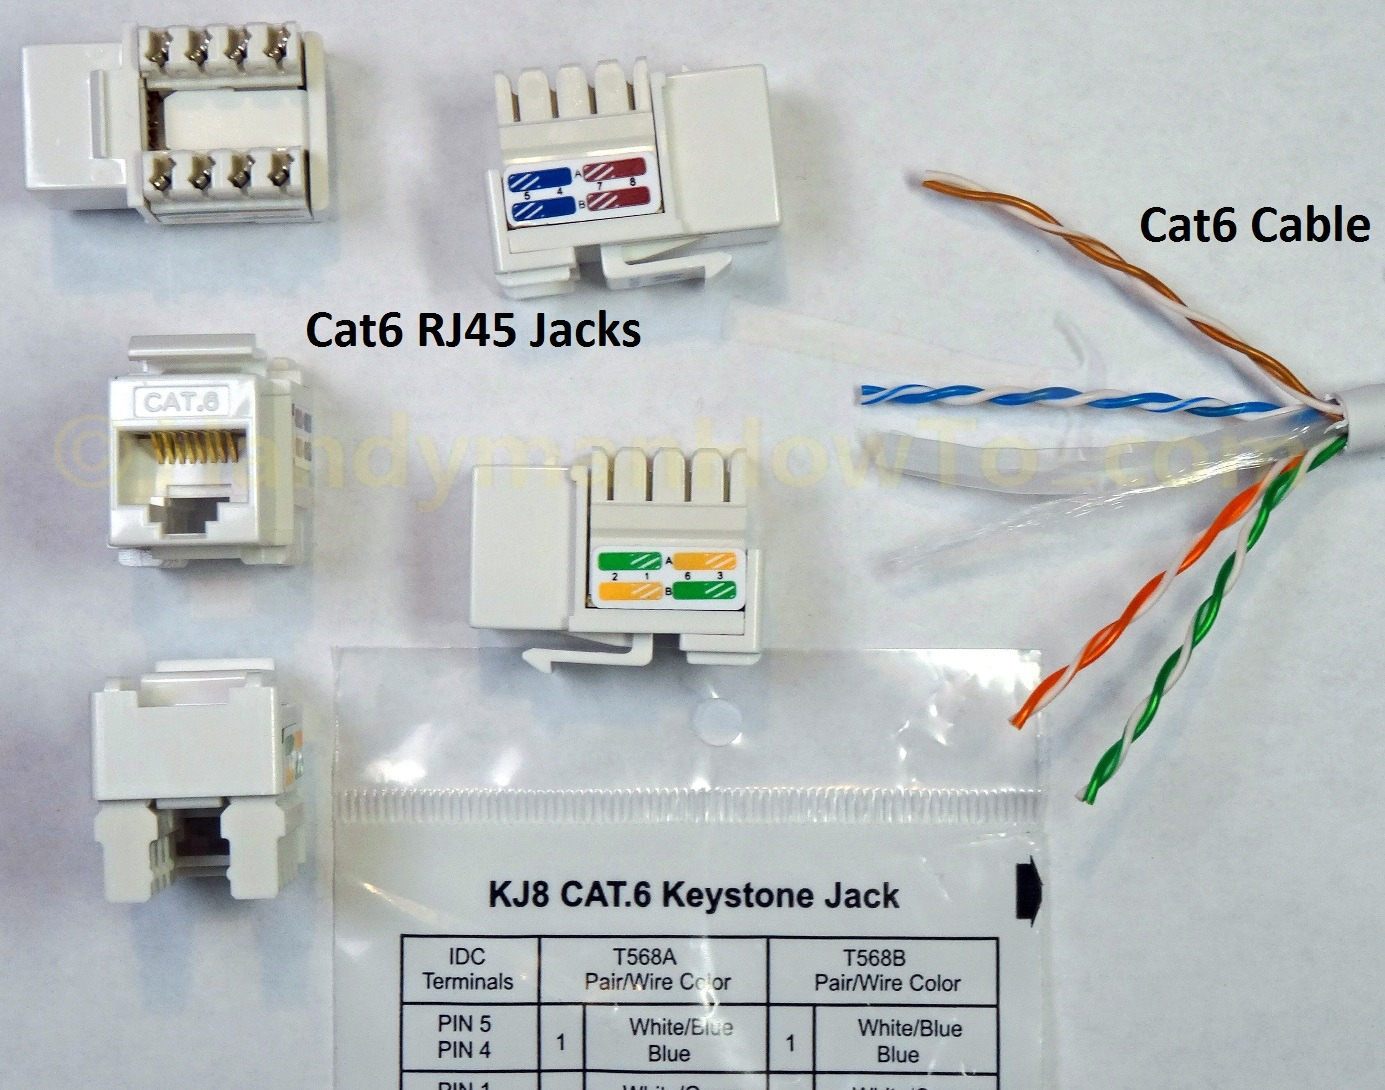 hight resolution of cat 6 wiring diagram for wall plates wirings diagram cat 5e wiring diagram cat6 wiring diagram wall